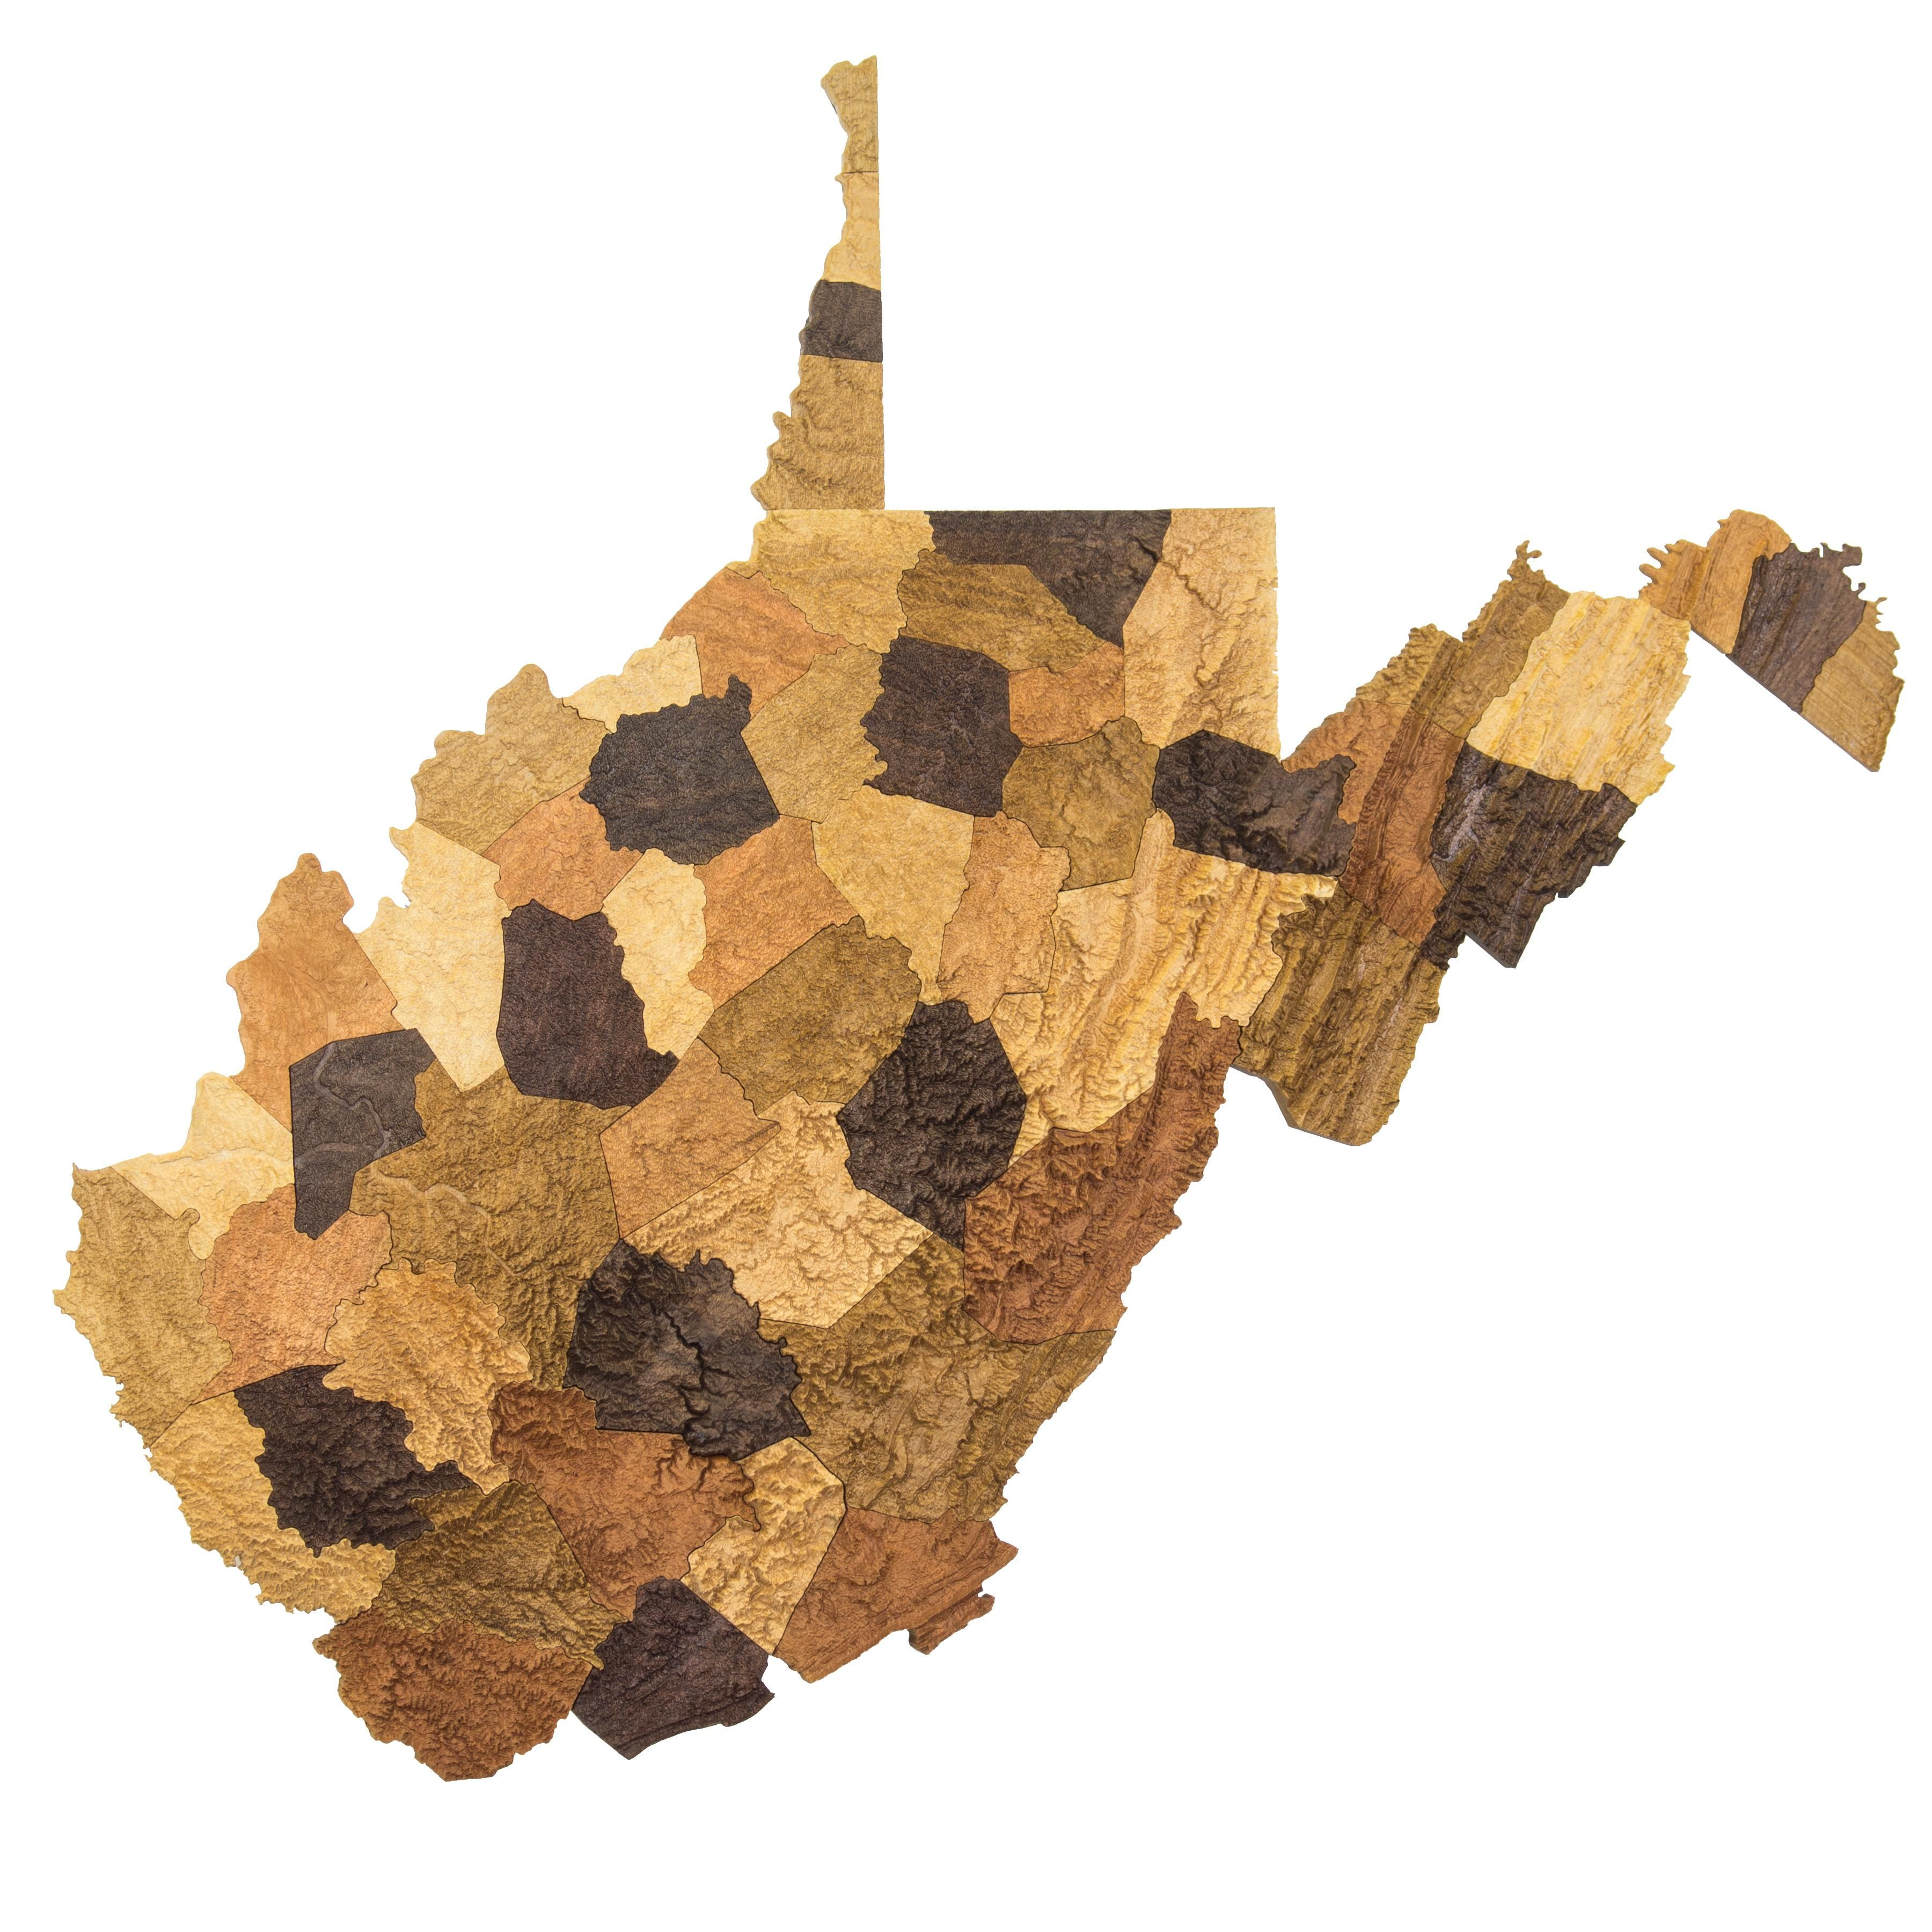 wooden topographic relief map of the counties of west virginia